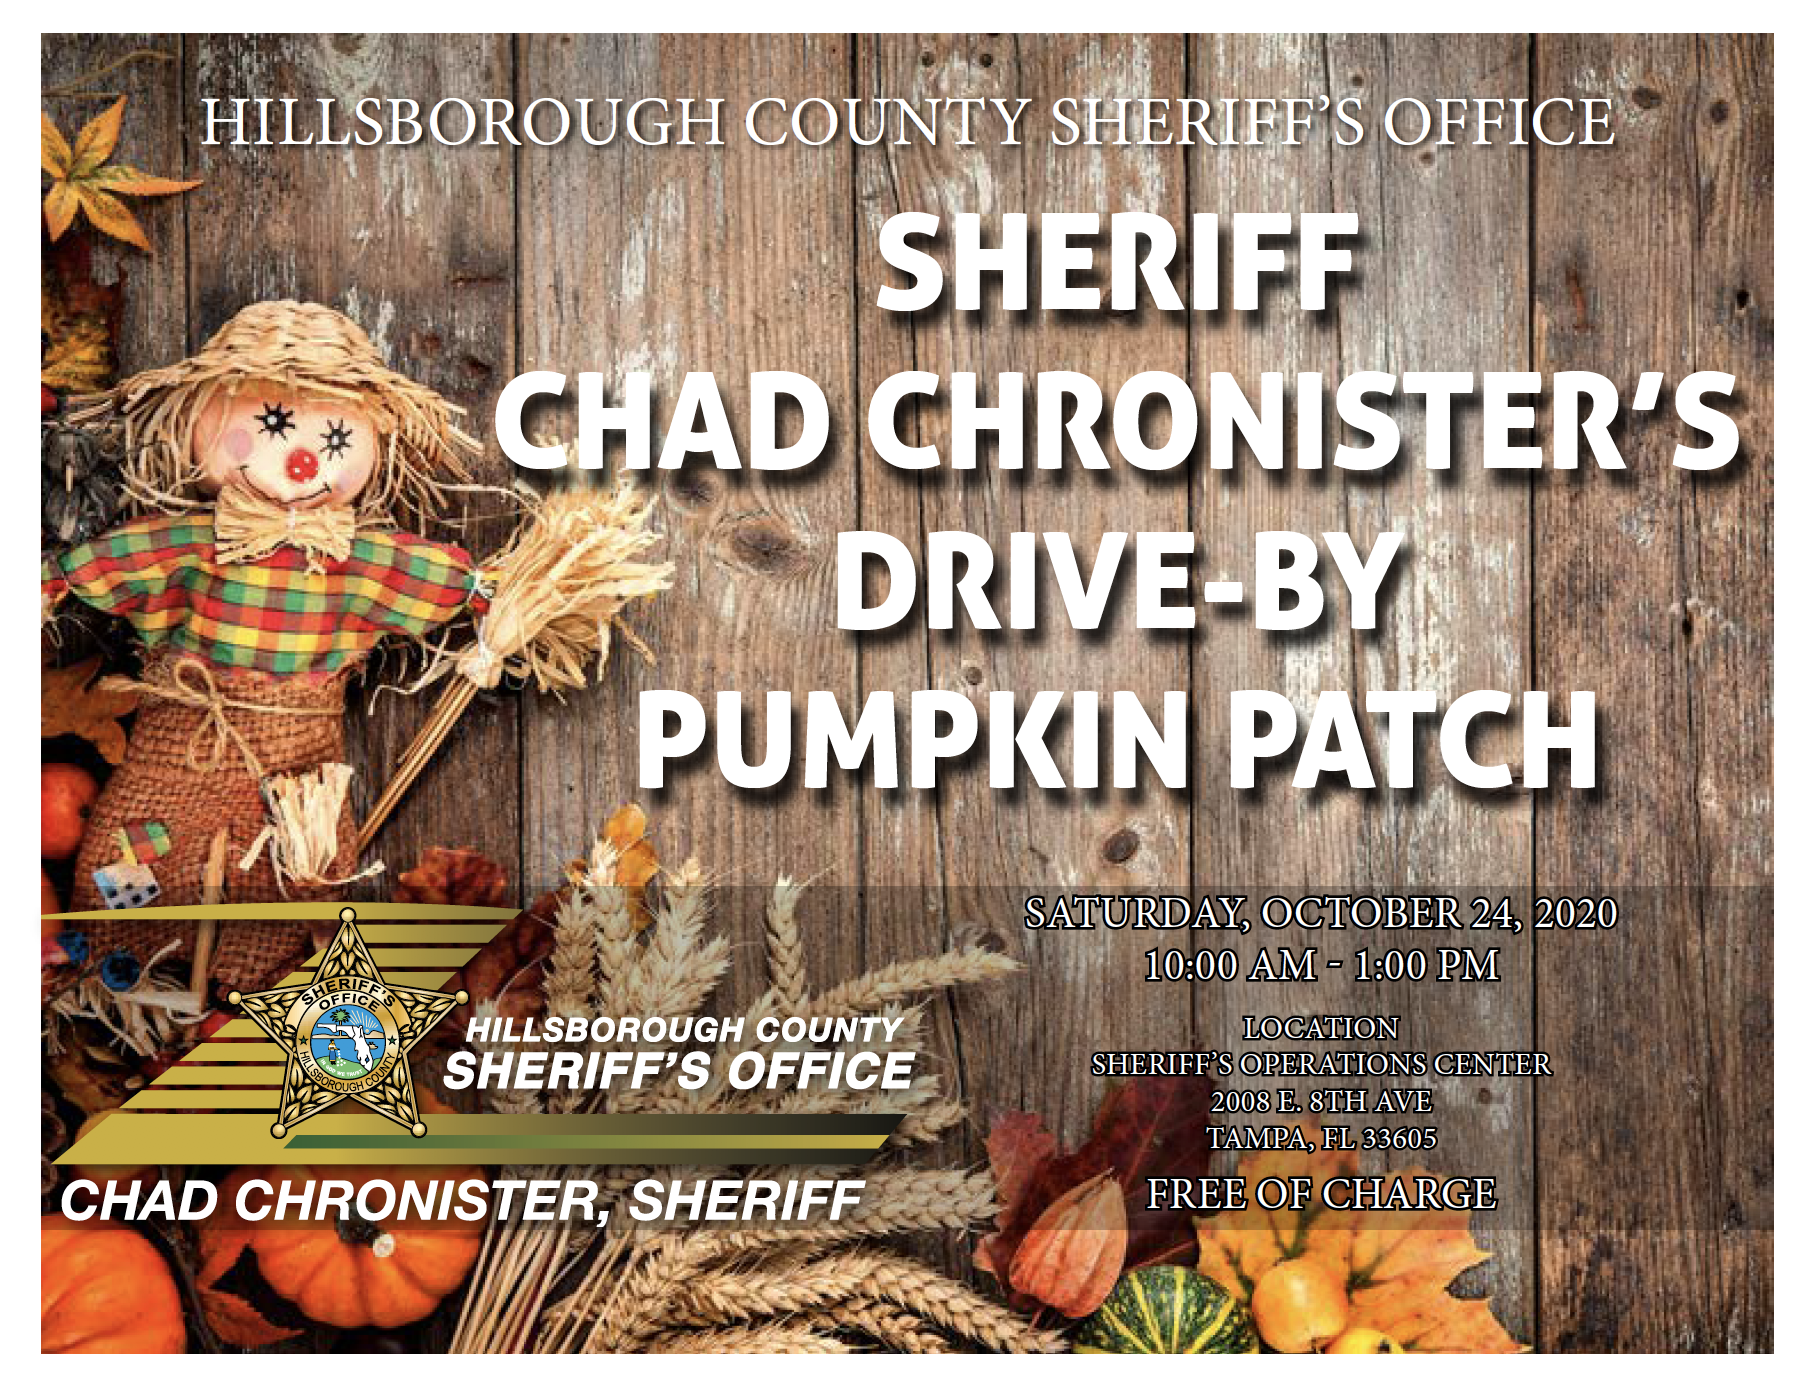 Sheriff Chad Chronister hosting drive-by pumpkin patch